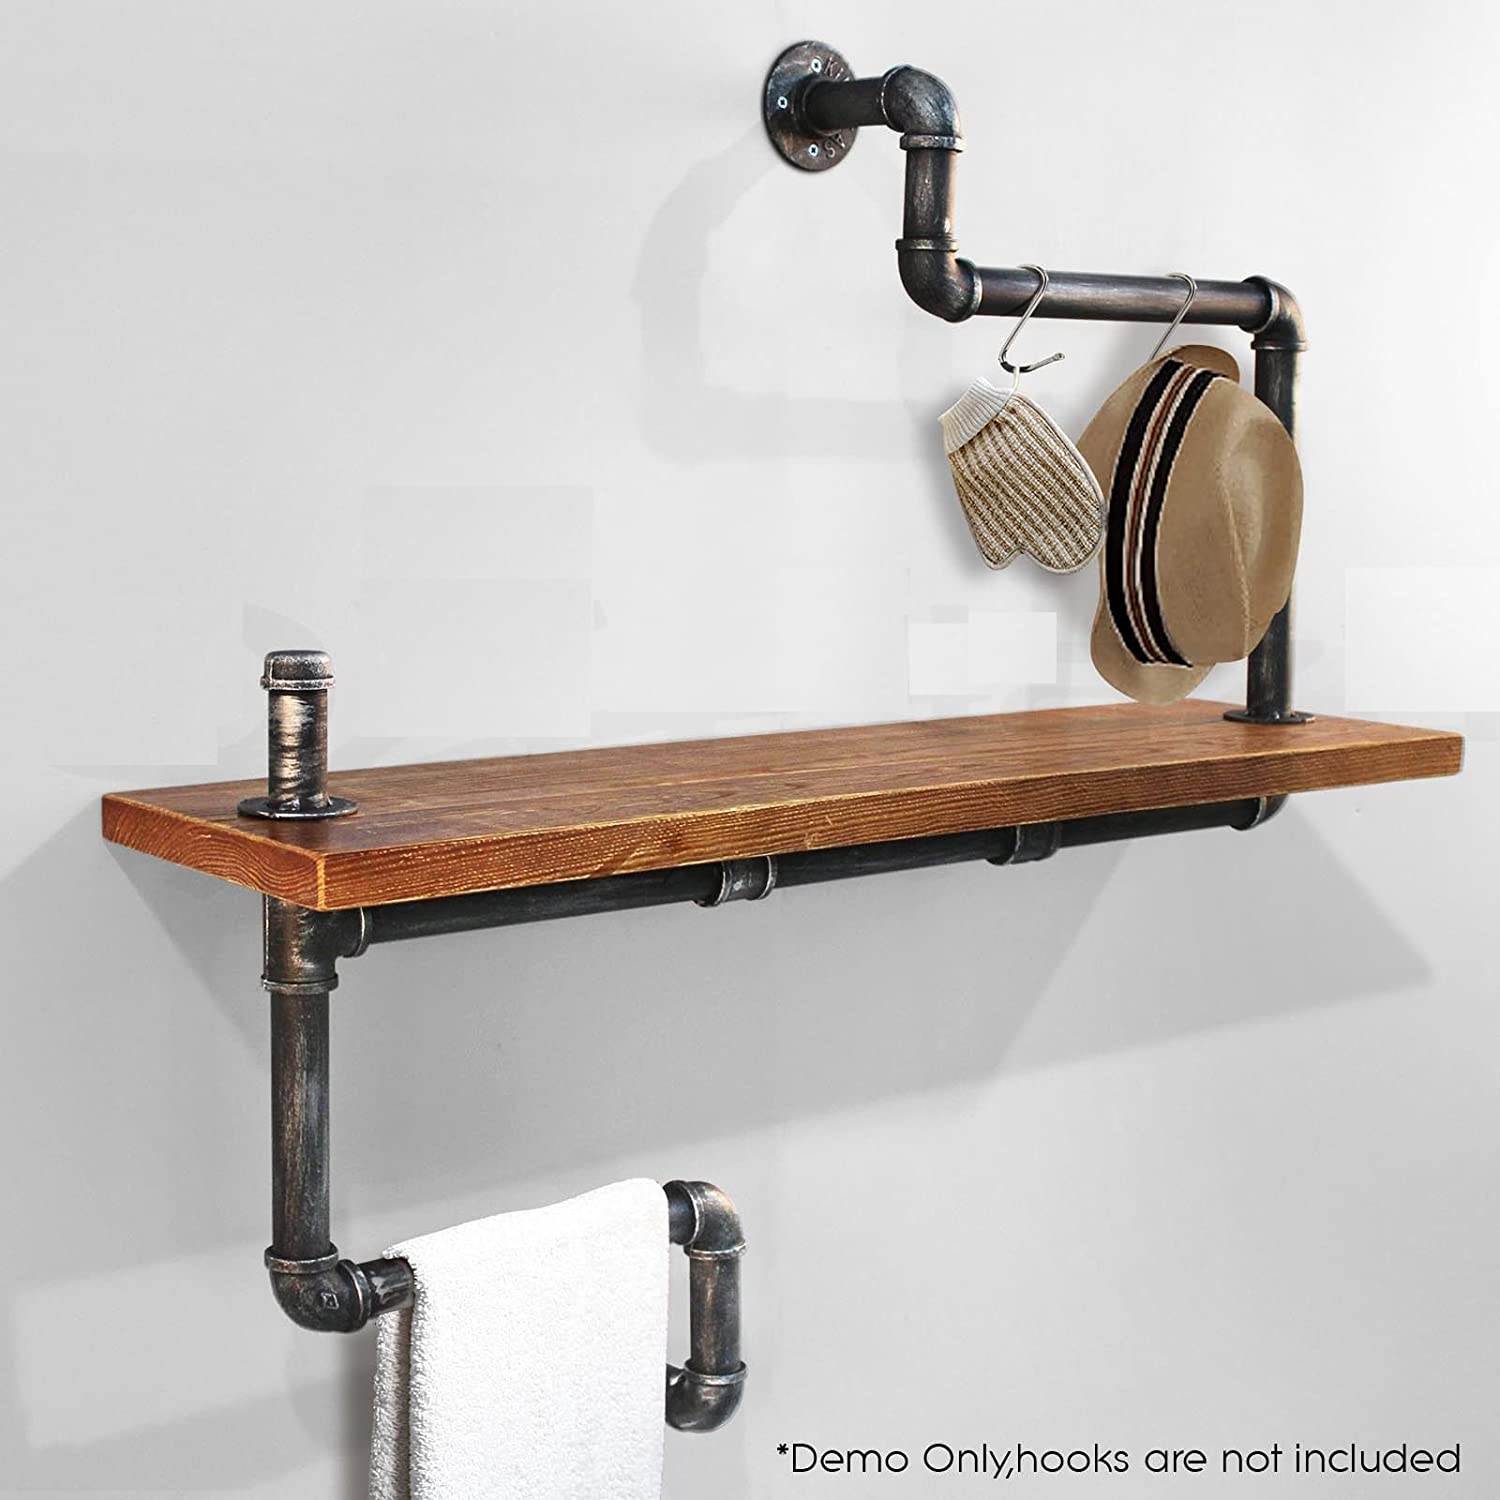 Industrial Bookcase Pipe Shelf Boards Reclaimed Galvanized Steel and Reused Wood